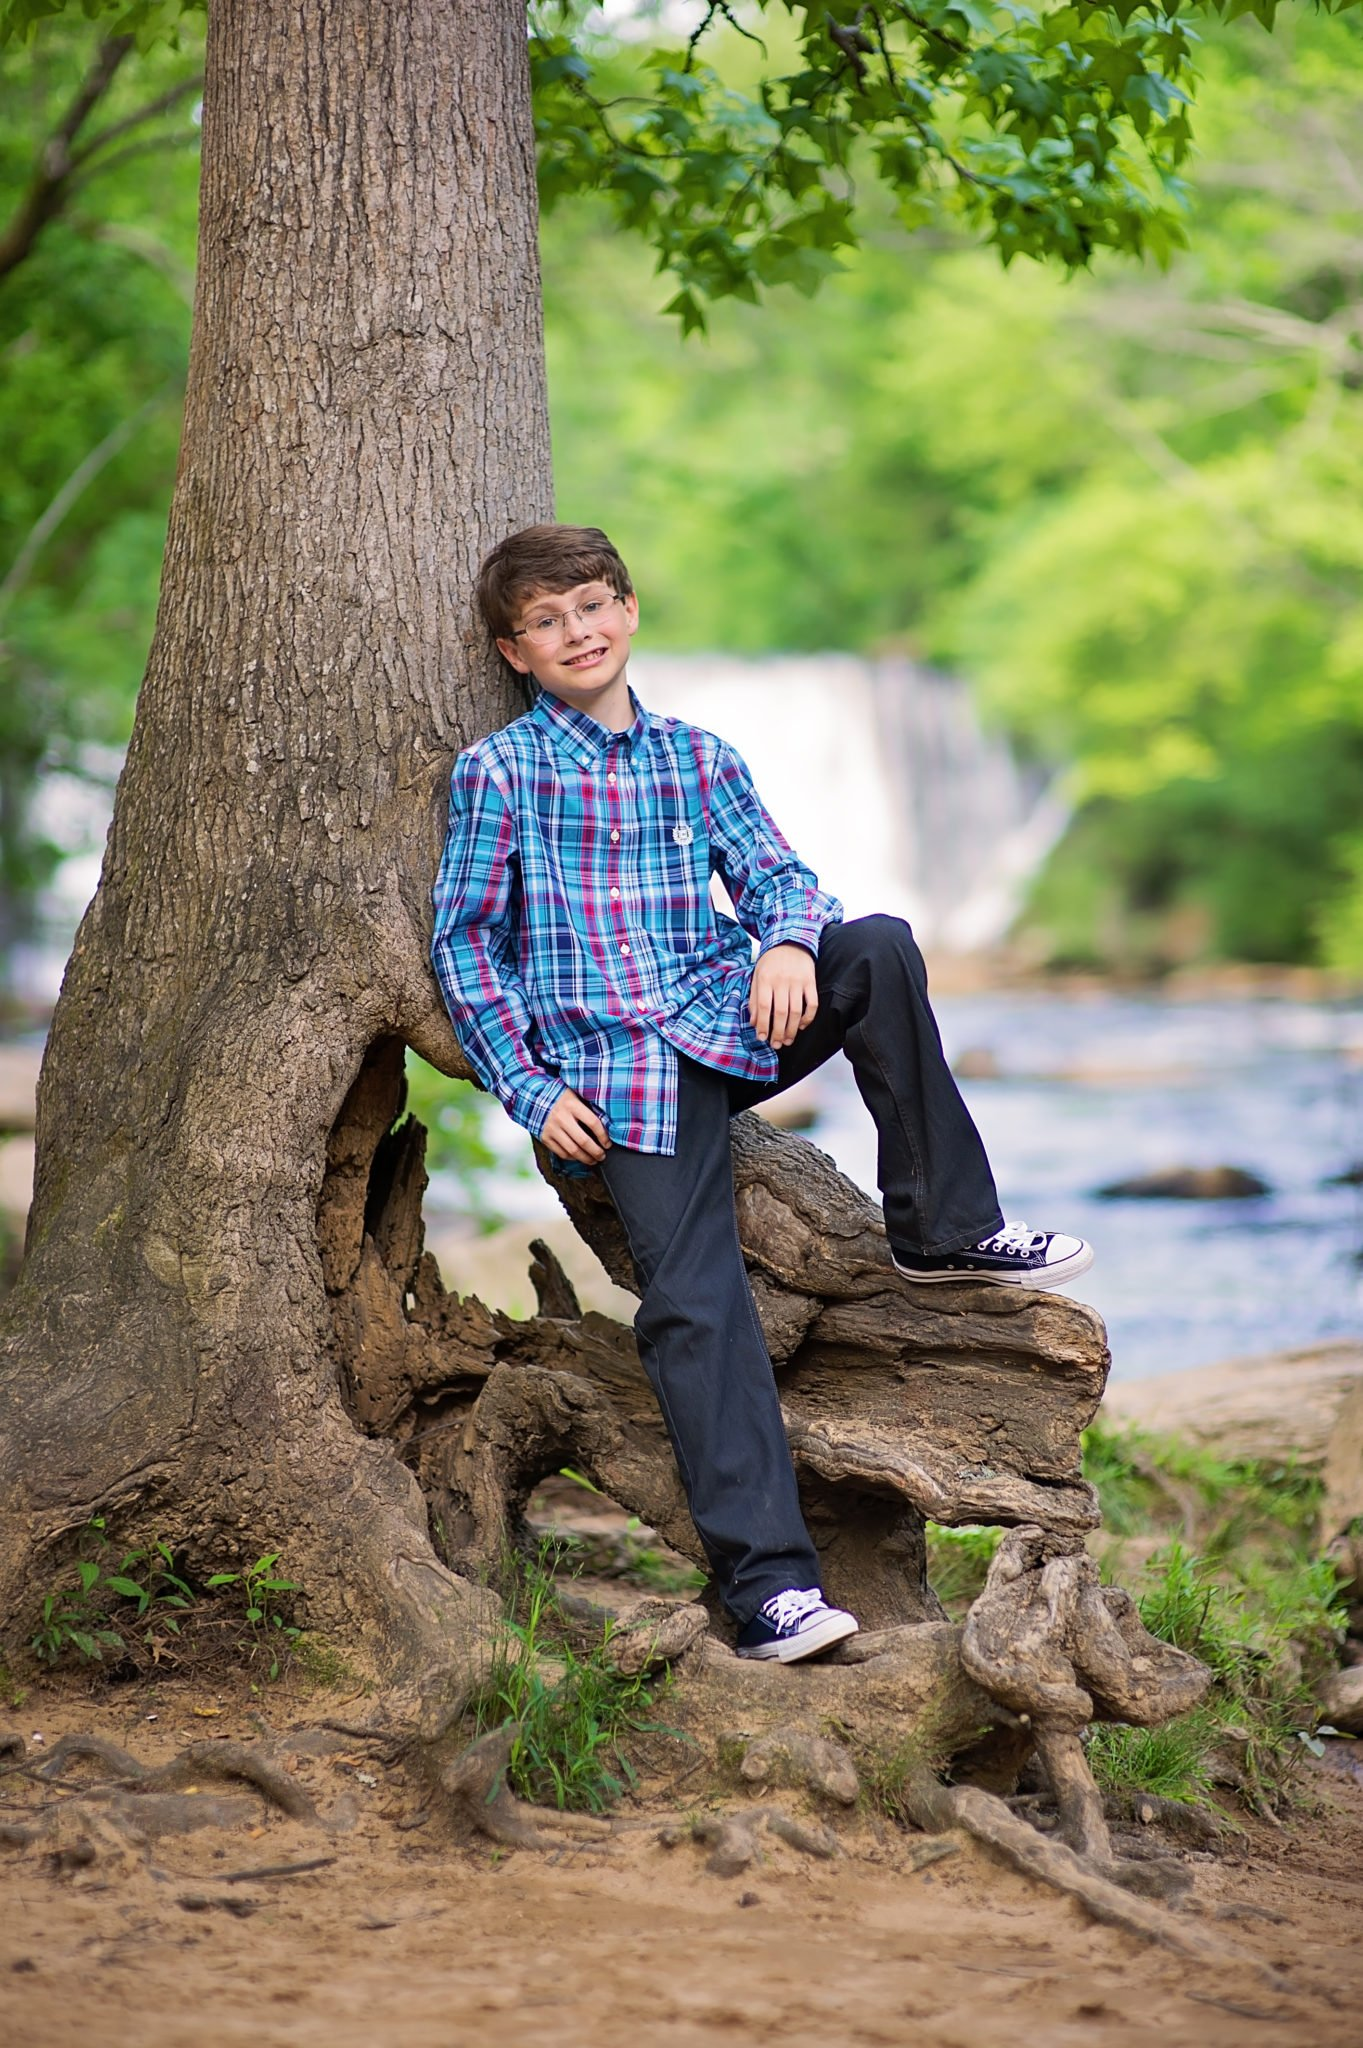 Young boy standing by tree wearing blue plaid shirt and jeans